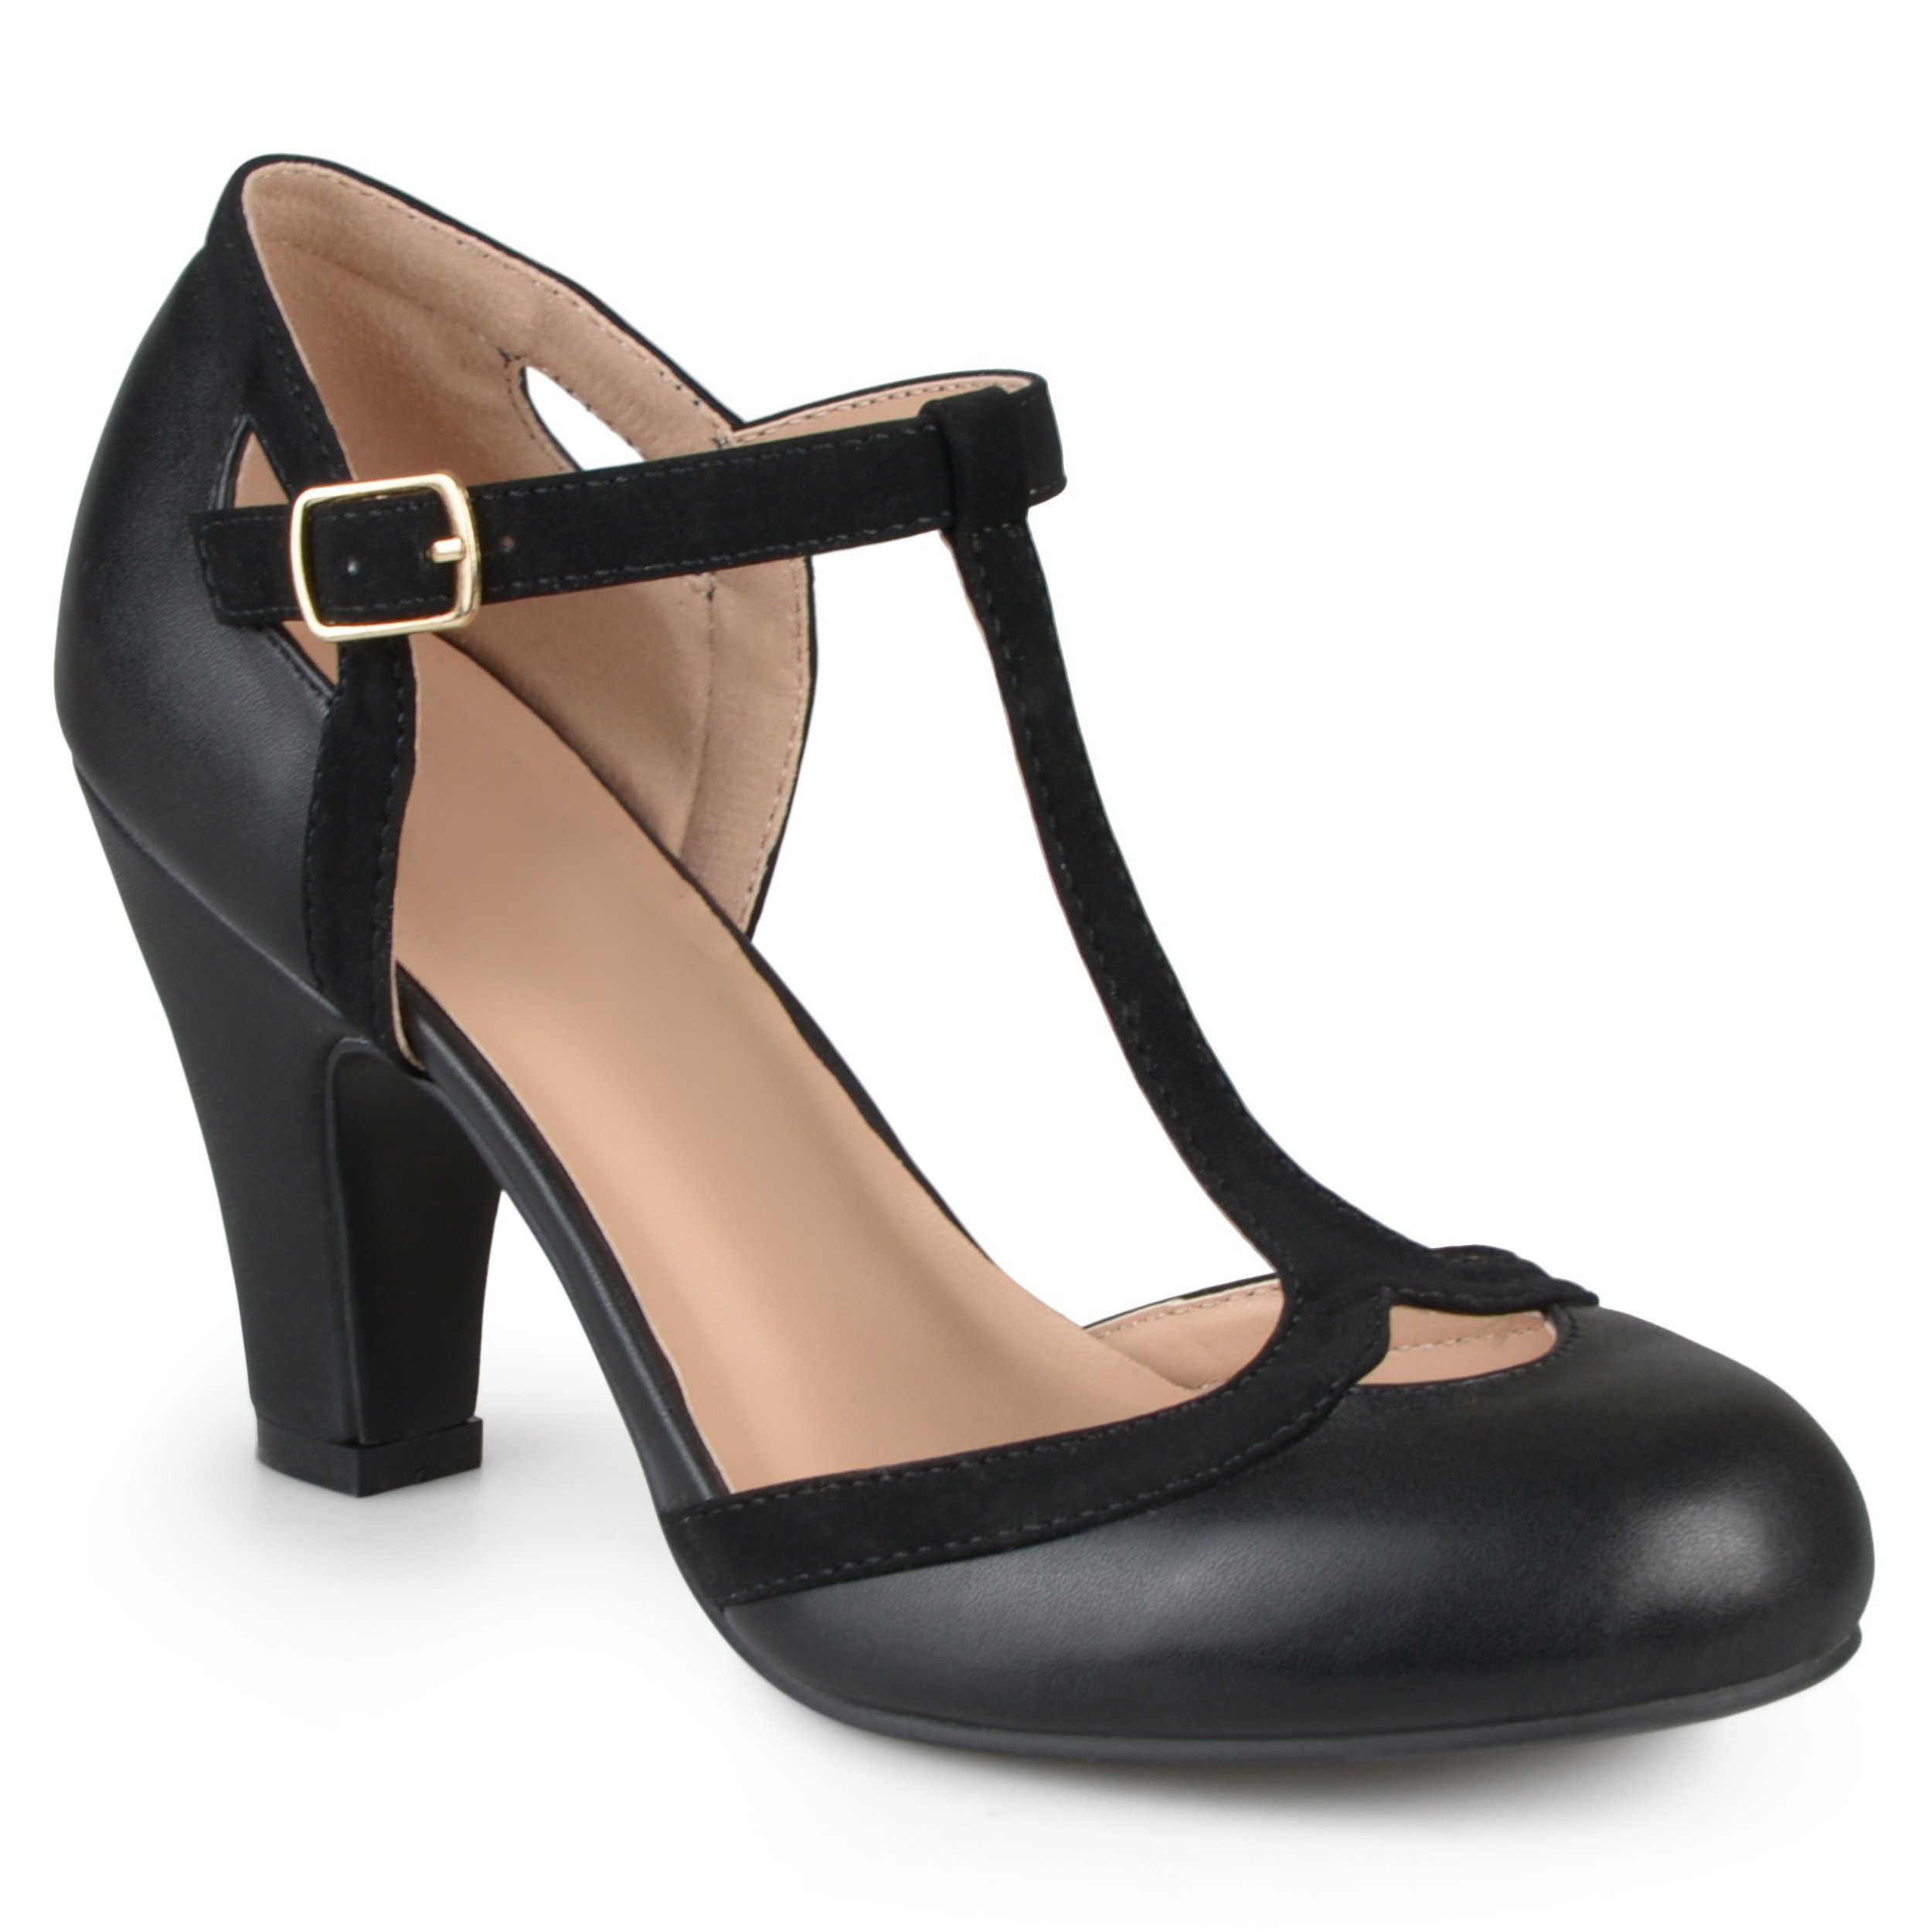 Journee Collection Womens T-Strap Round Toe Mary Jane Pumps Black, 8.5 Wide Width US